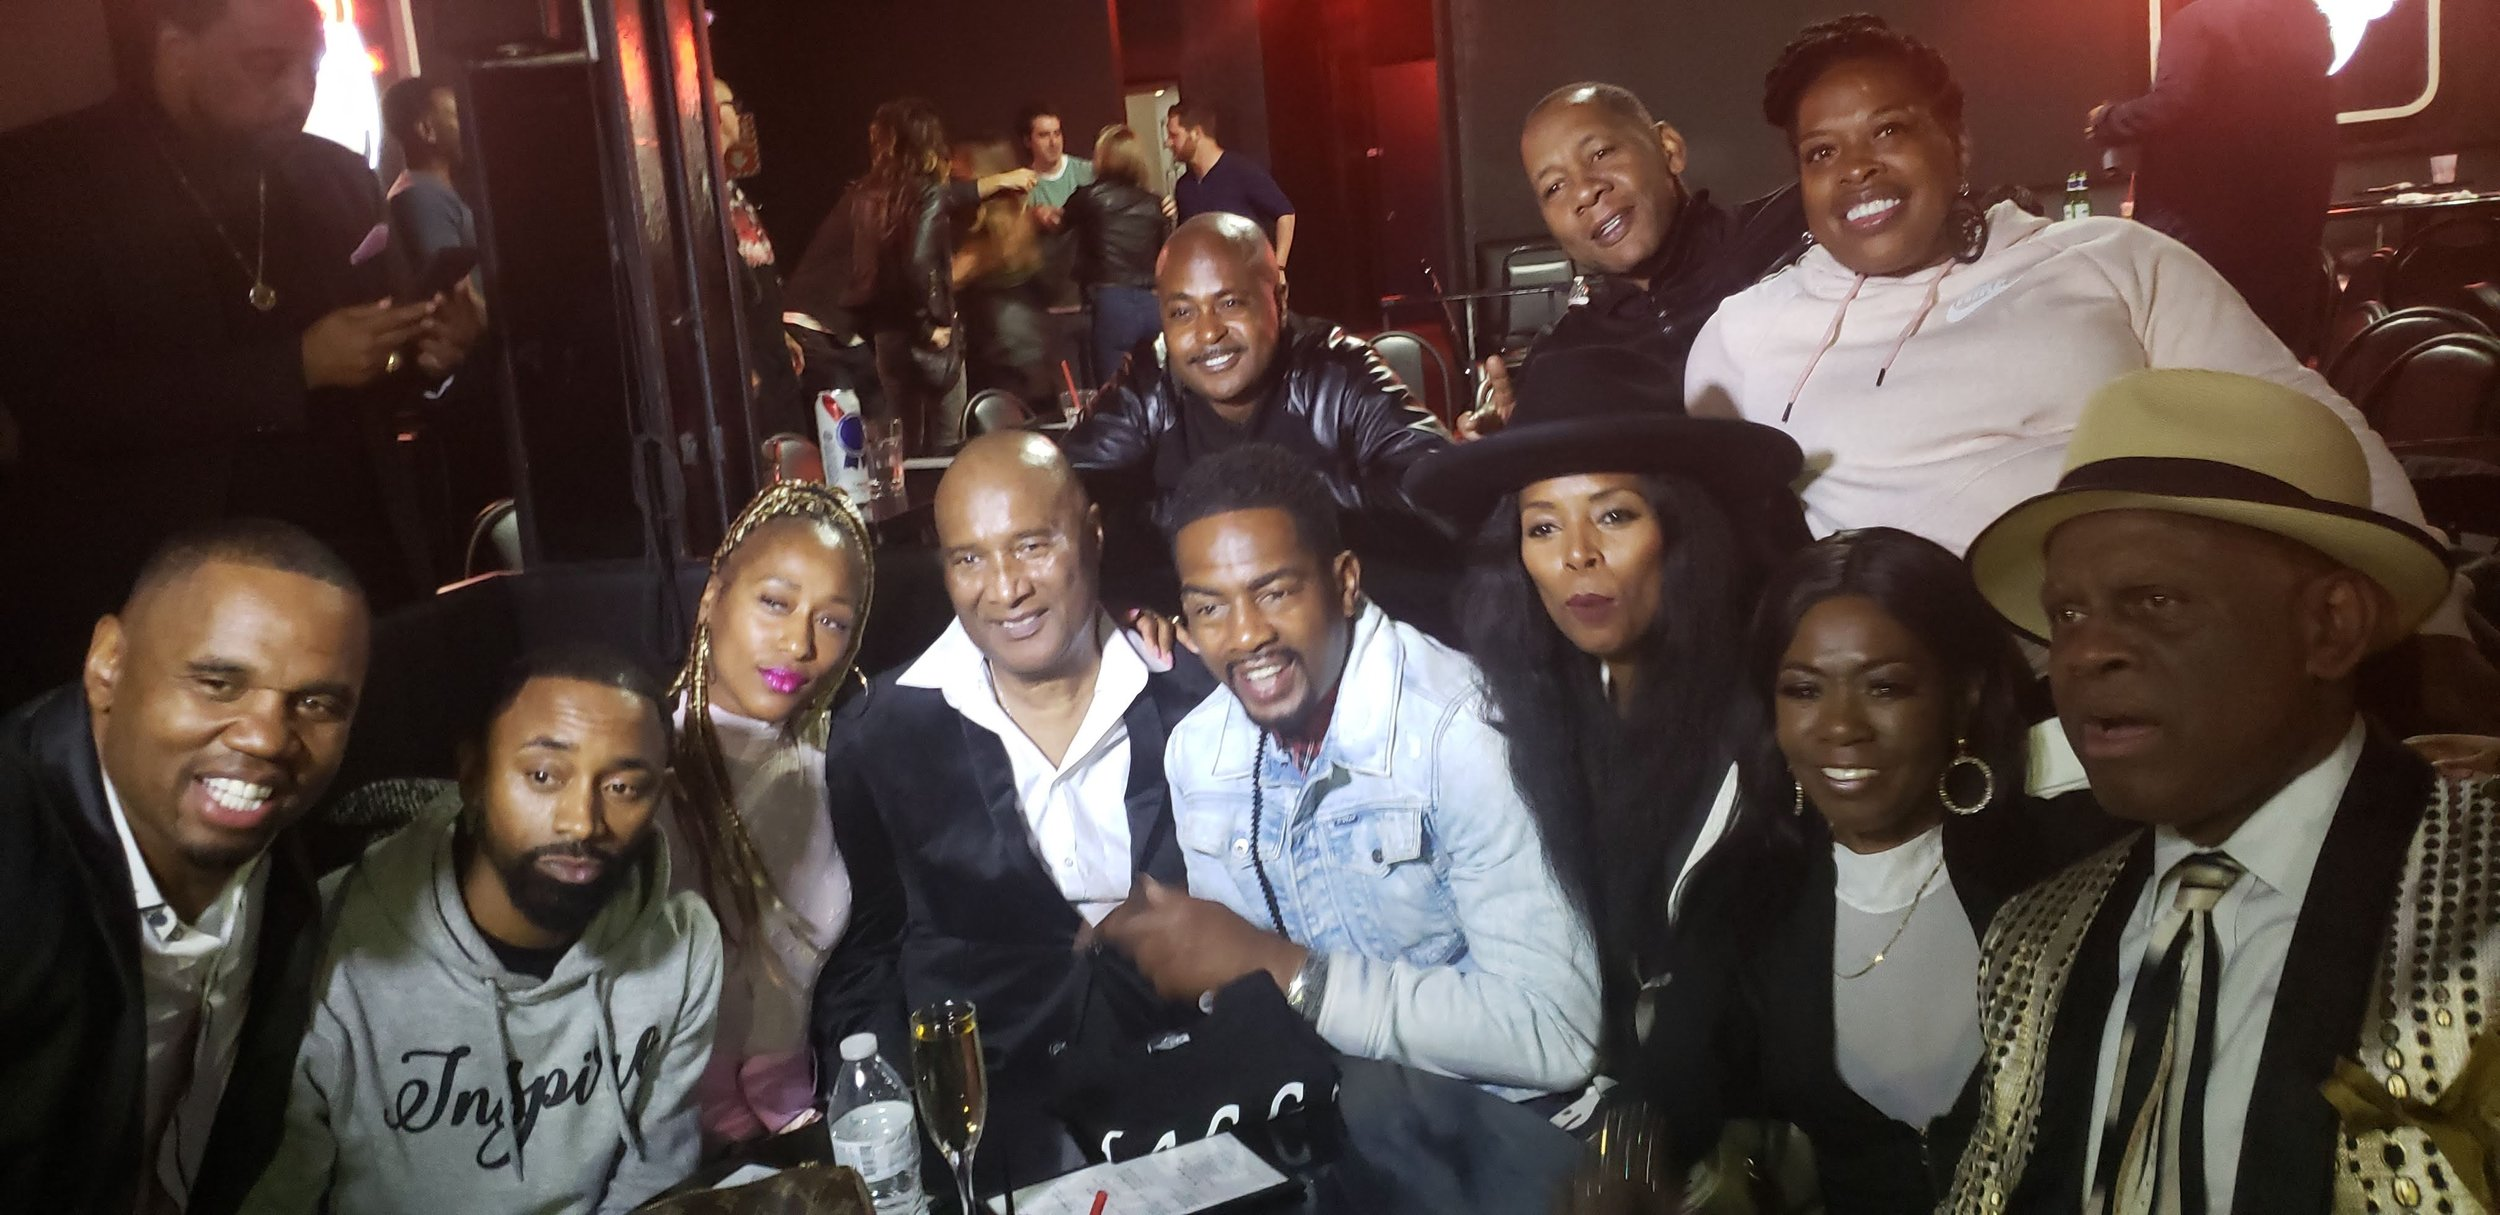 Comedians came out to tribute legendary funny man, Mr. Paul Mooney, at a recent tribute in Hollywood, CA at the World Famous Comedy Store!